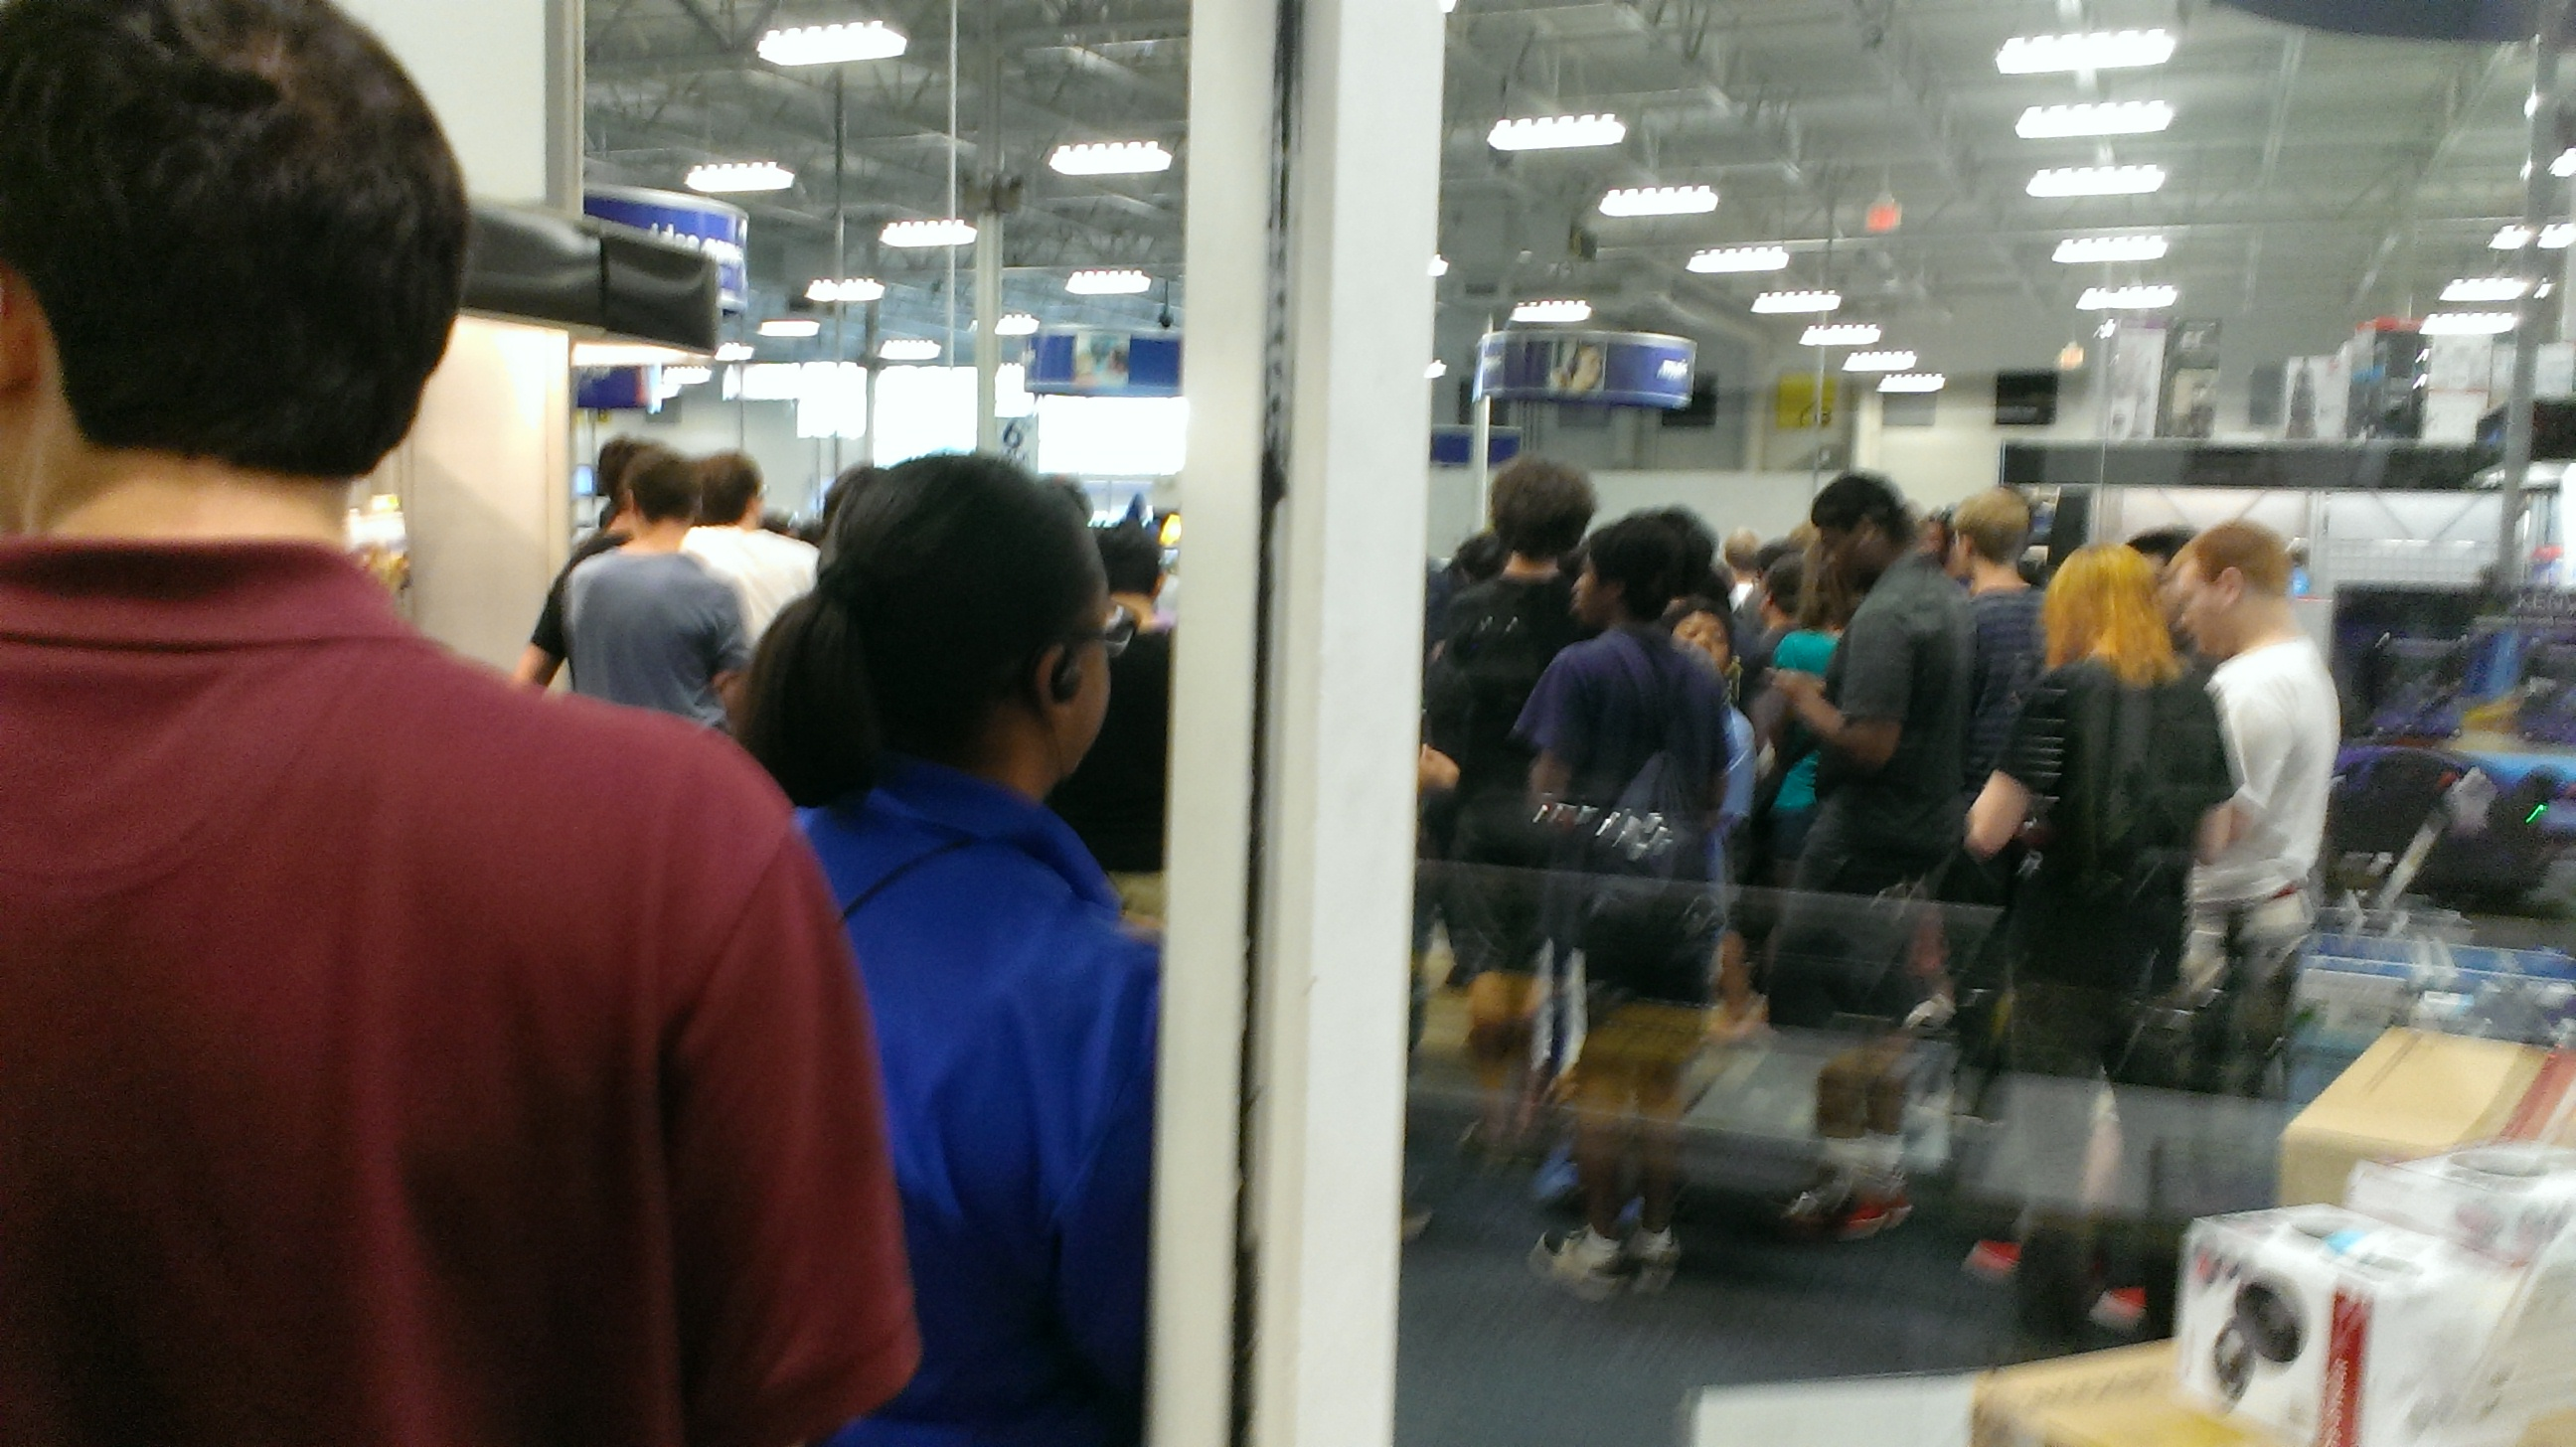 Waiting in line for just two minutes of Smash is an intense experience indeed.